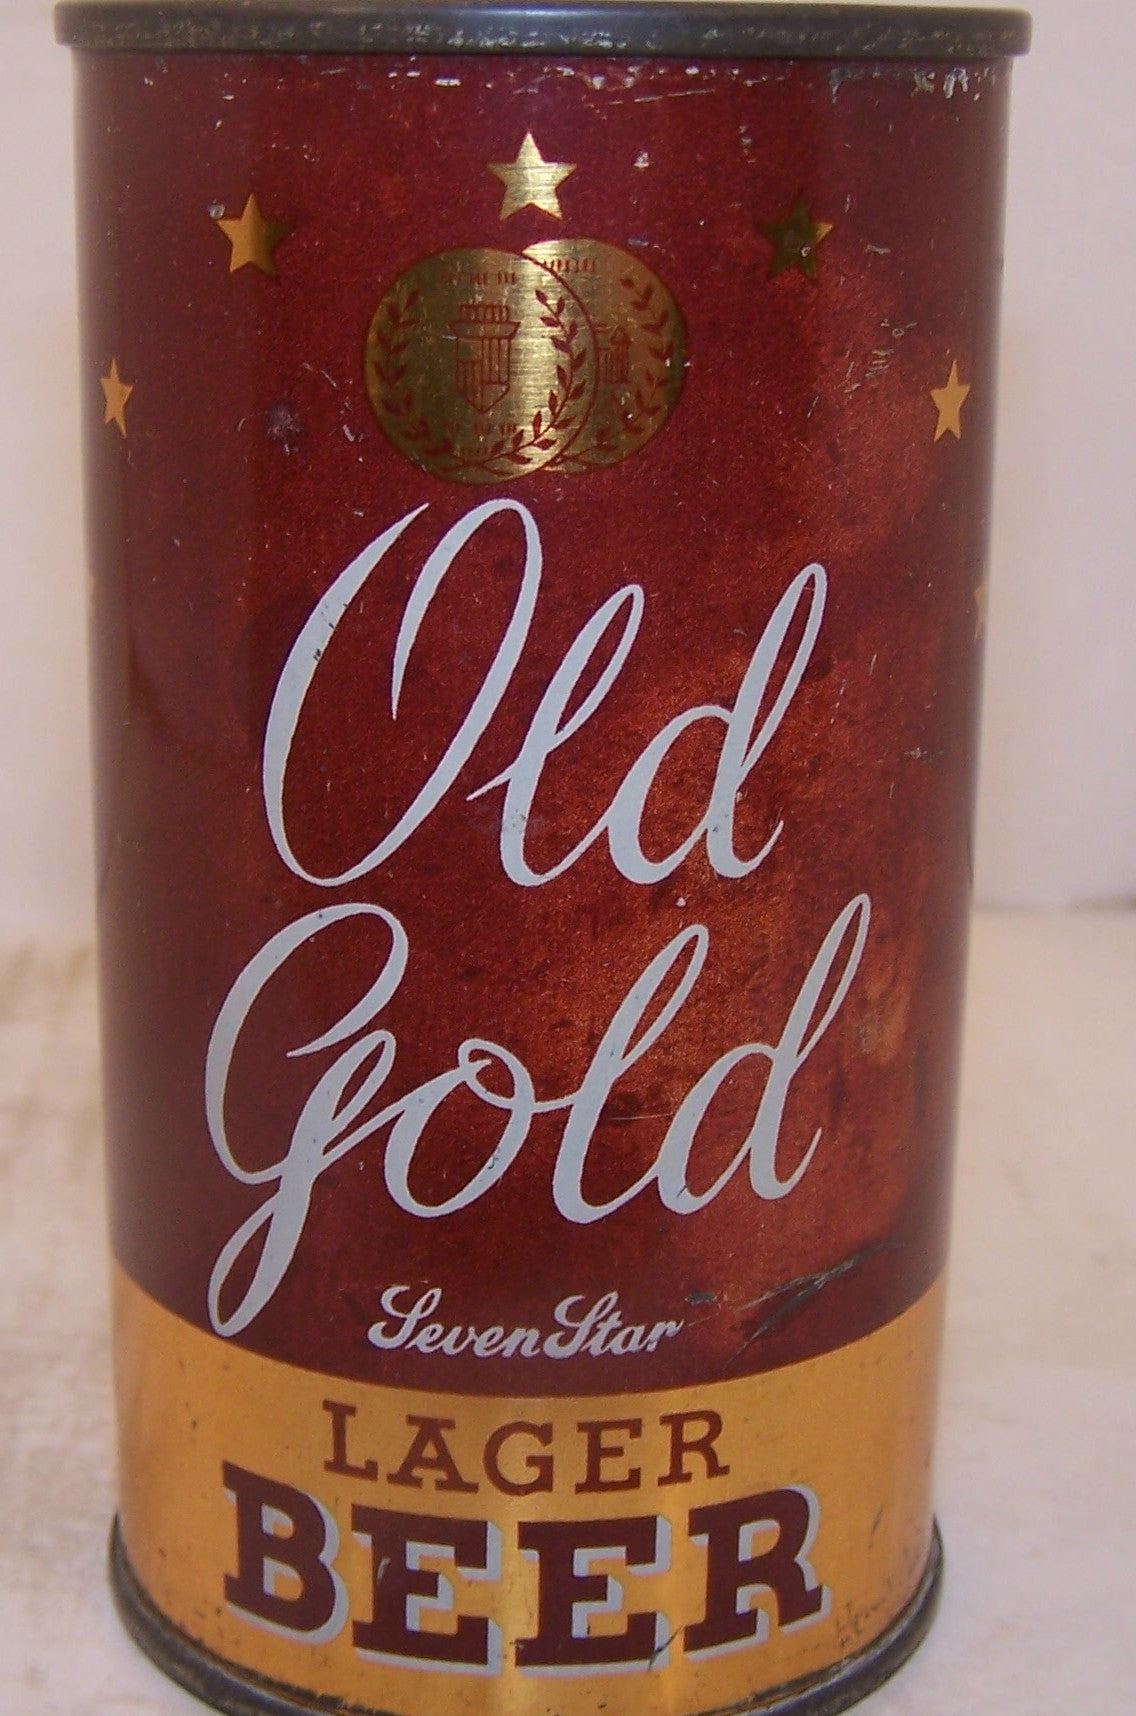 Old Gold Seven Star Lager Beer, Lilek page # 608, Grade 1-/2+ Sold 3/14/15